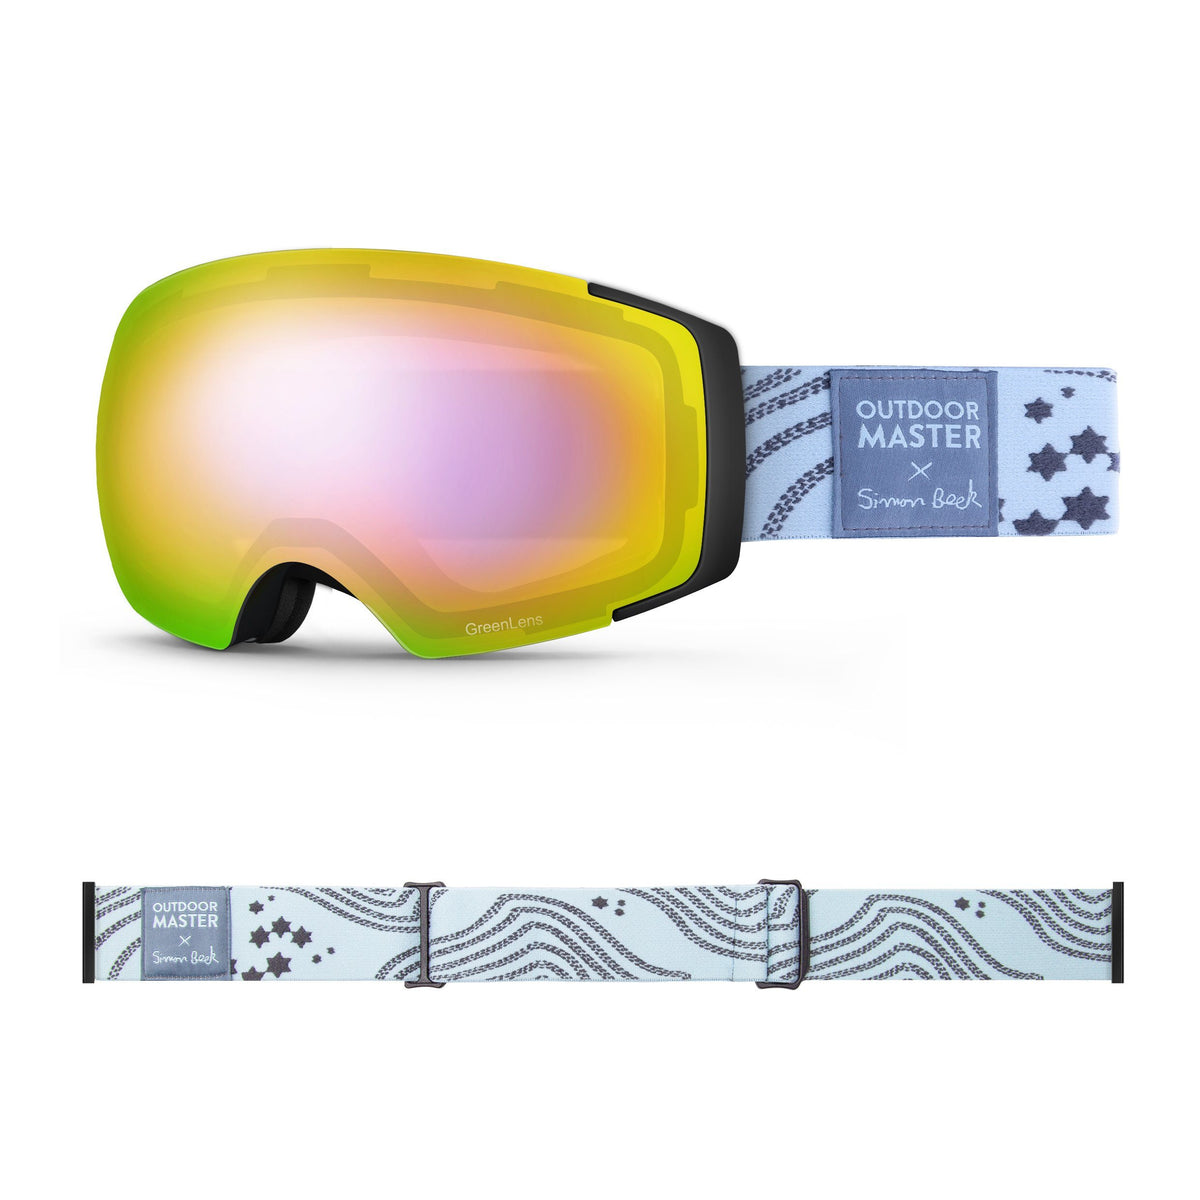 OutdoorMaster x Simon Beck Ski Goggles Pro Series - Snowshoeing Art Limited Edition OutdoorMaster GreenLens VLT 45% TAC Purple with REVO Red Polarized Star Road-Lightsteelblue